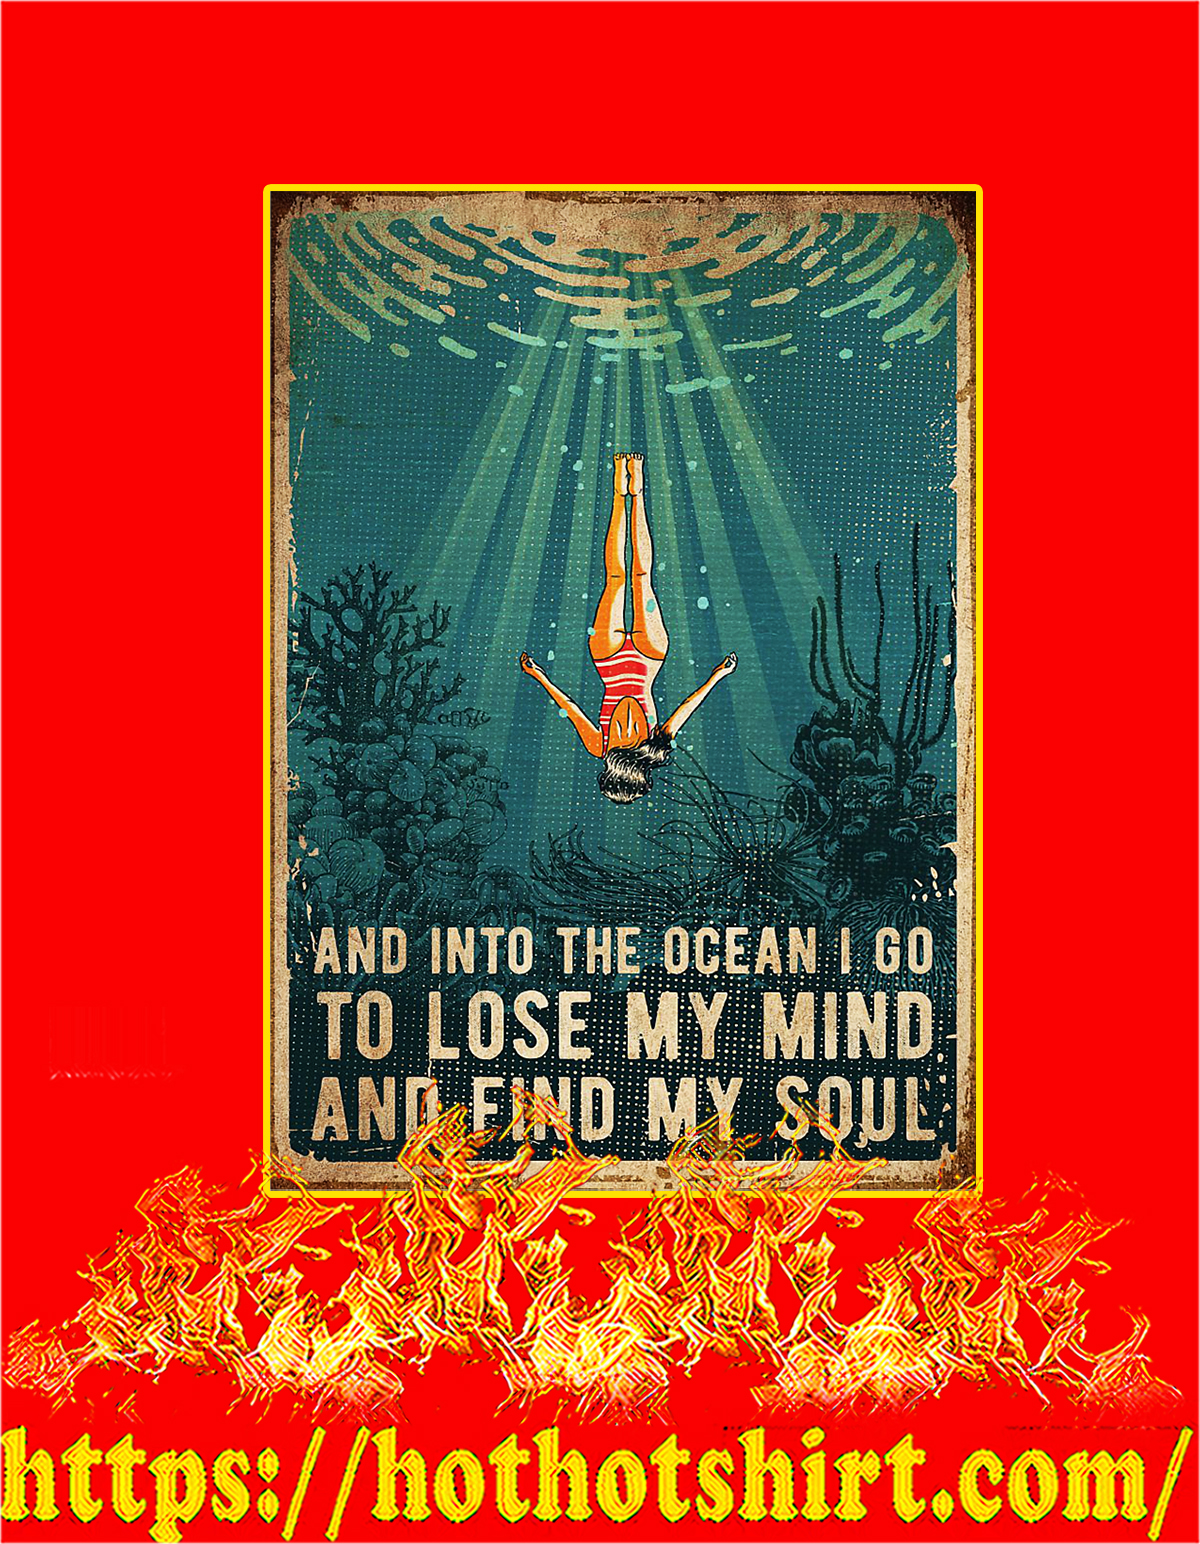 Swimming And into the ocean I go to lose my mind and find my soul poster - A3